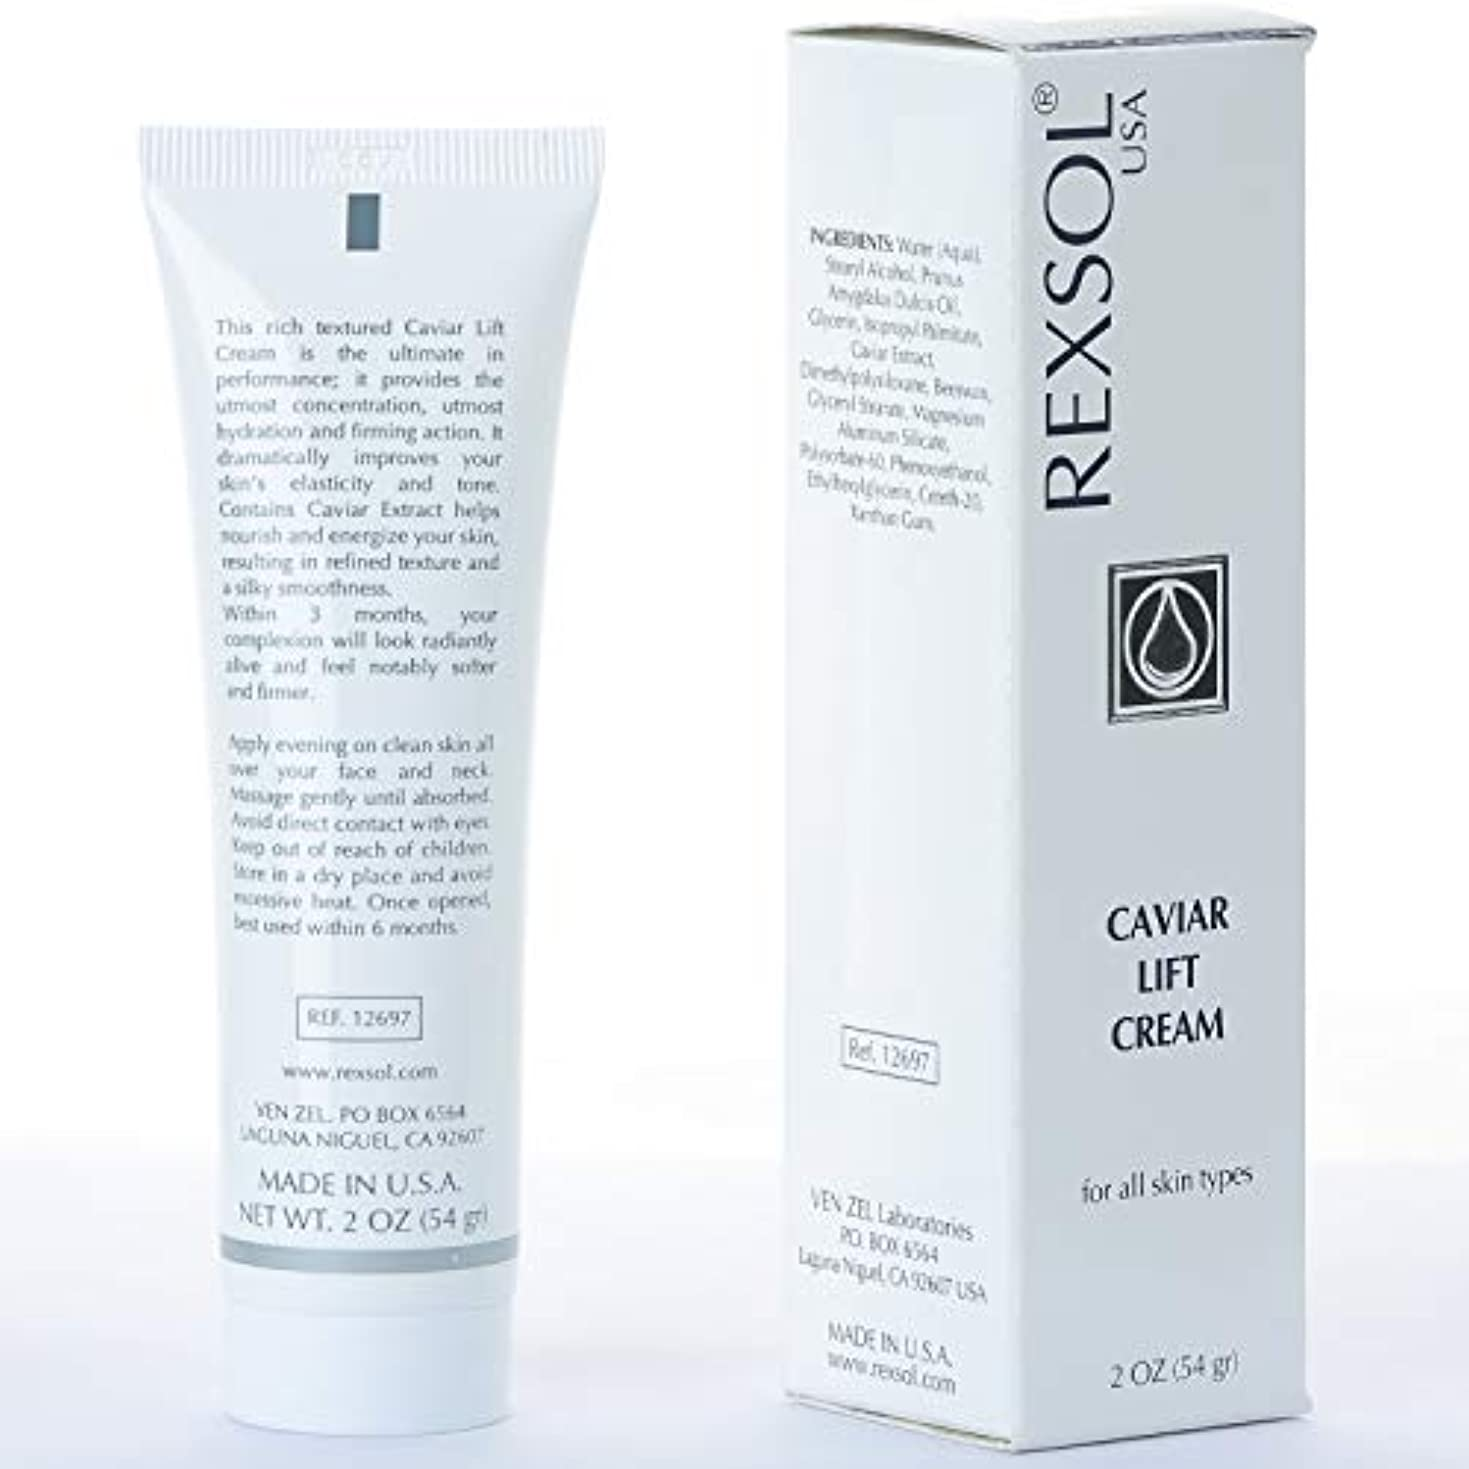 ゆでるピカリング一回REXSOL Caviar Lift Cream | Contains Prunus Amygdalus Dulcis Oil, Glycerin, Beeswax & Caviar Extract | あなたの肌の弾力...